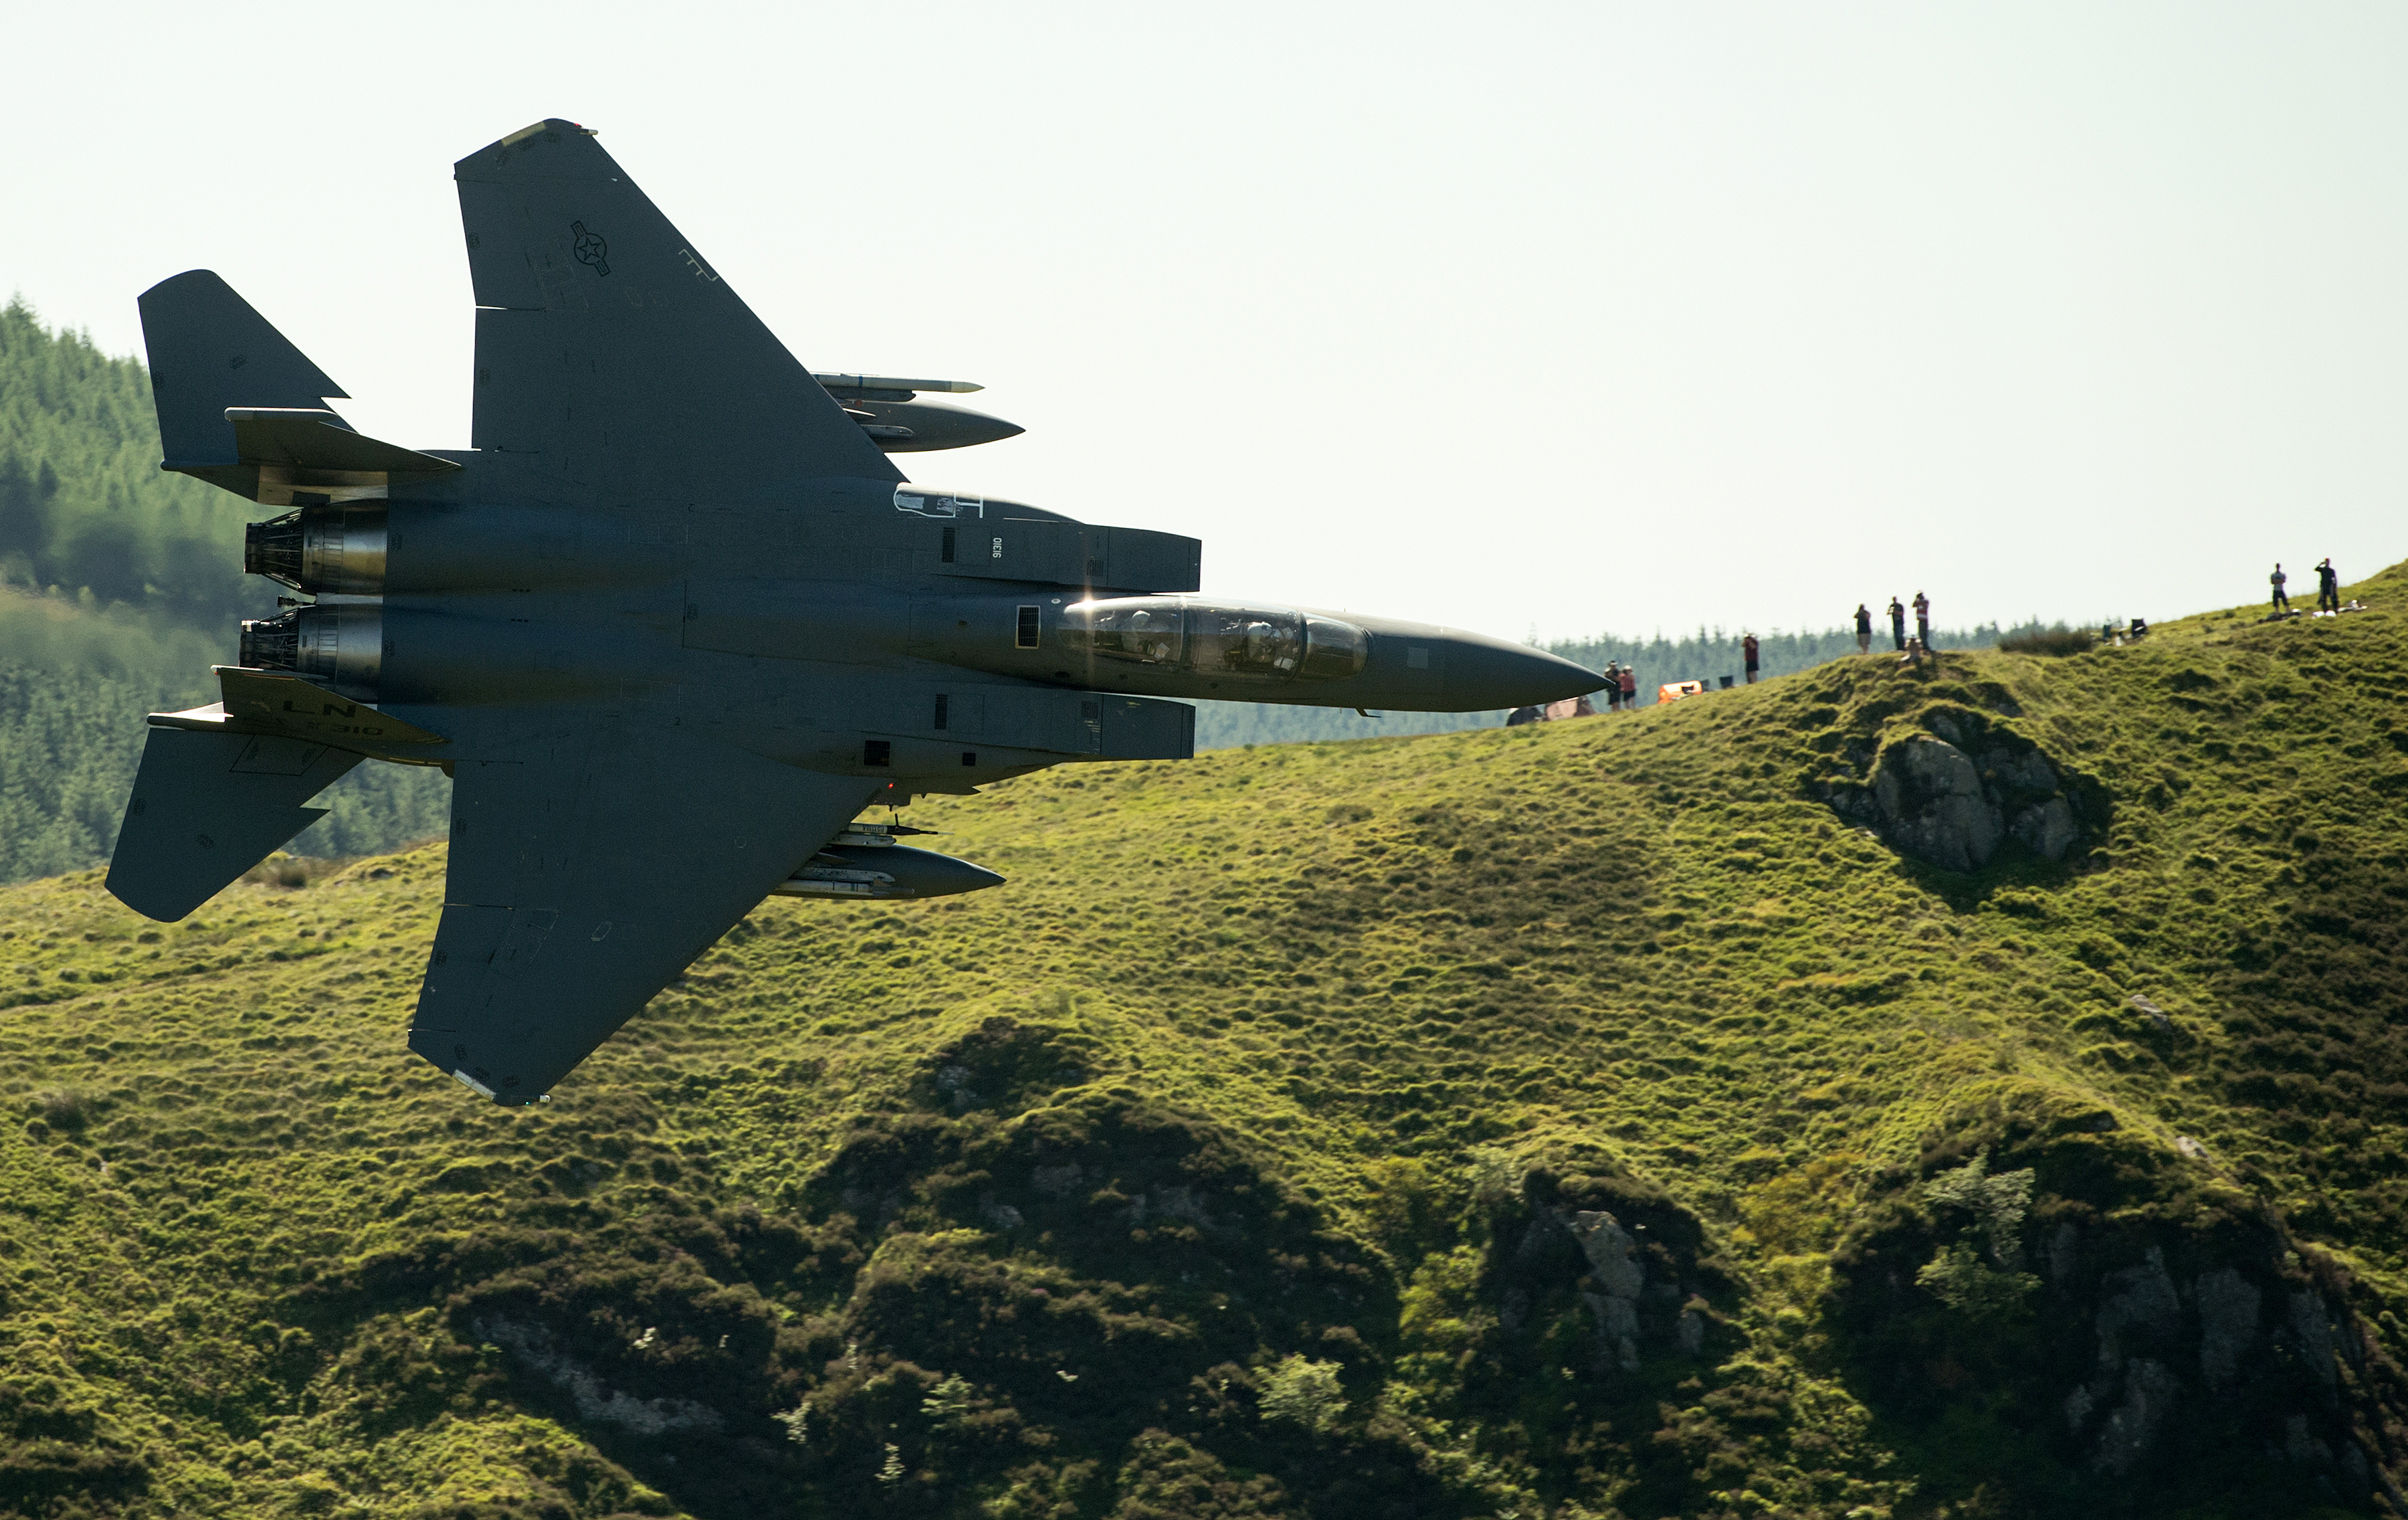 Military aircraft enthusiasts watch as a United States Air Force (USAF) F-15 fighter jet as it travels at low altitude through the 'Mach Loop' series of valleys near Dolgellau, north Wales on June 26, 2018.